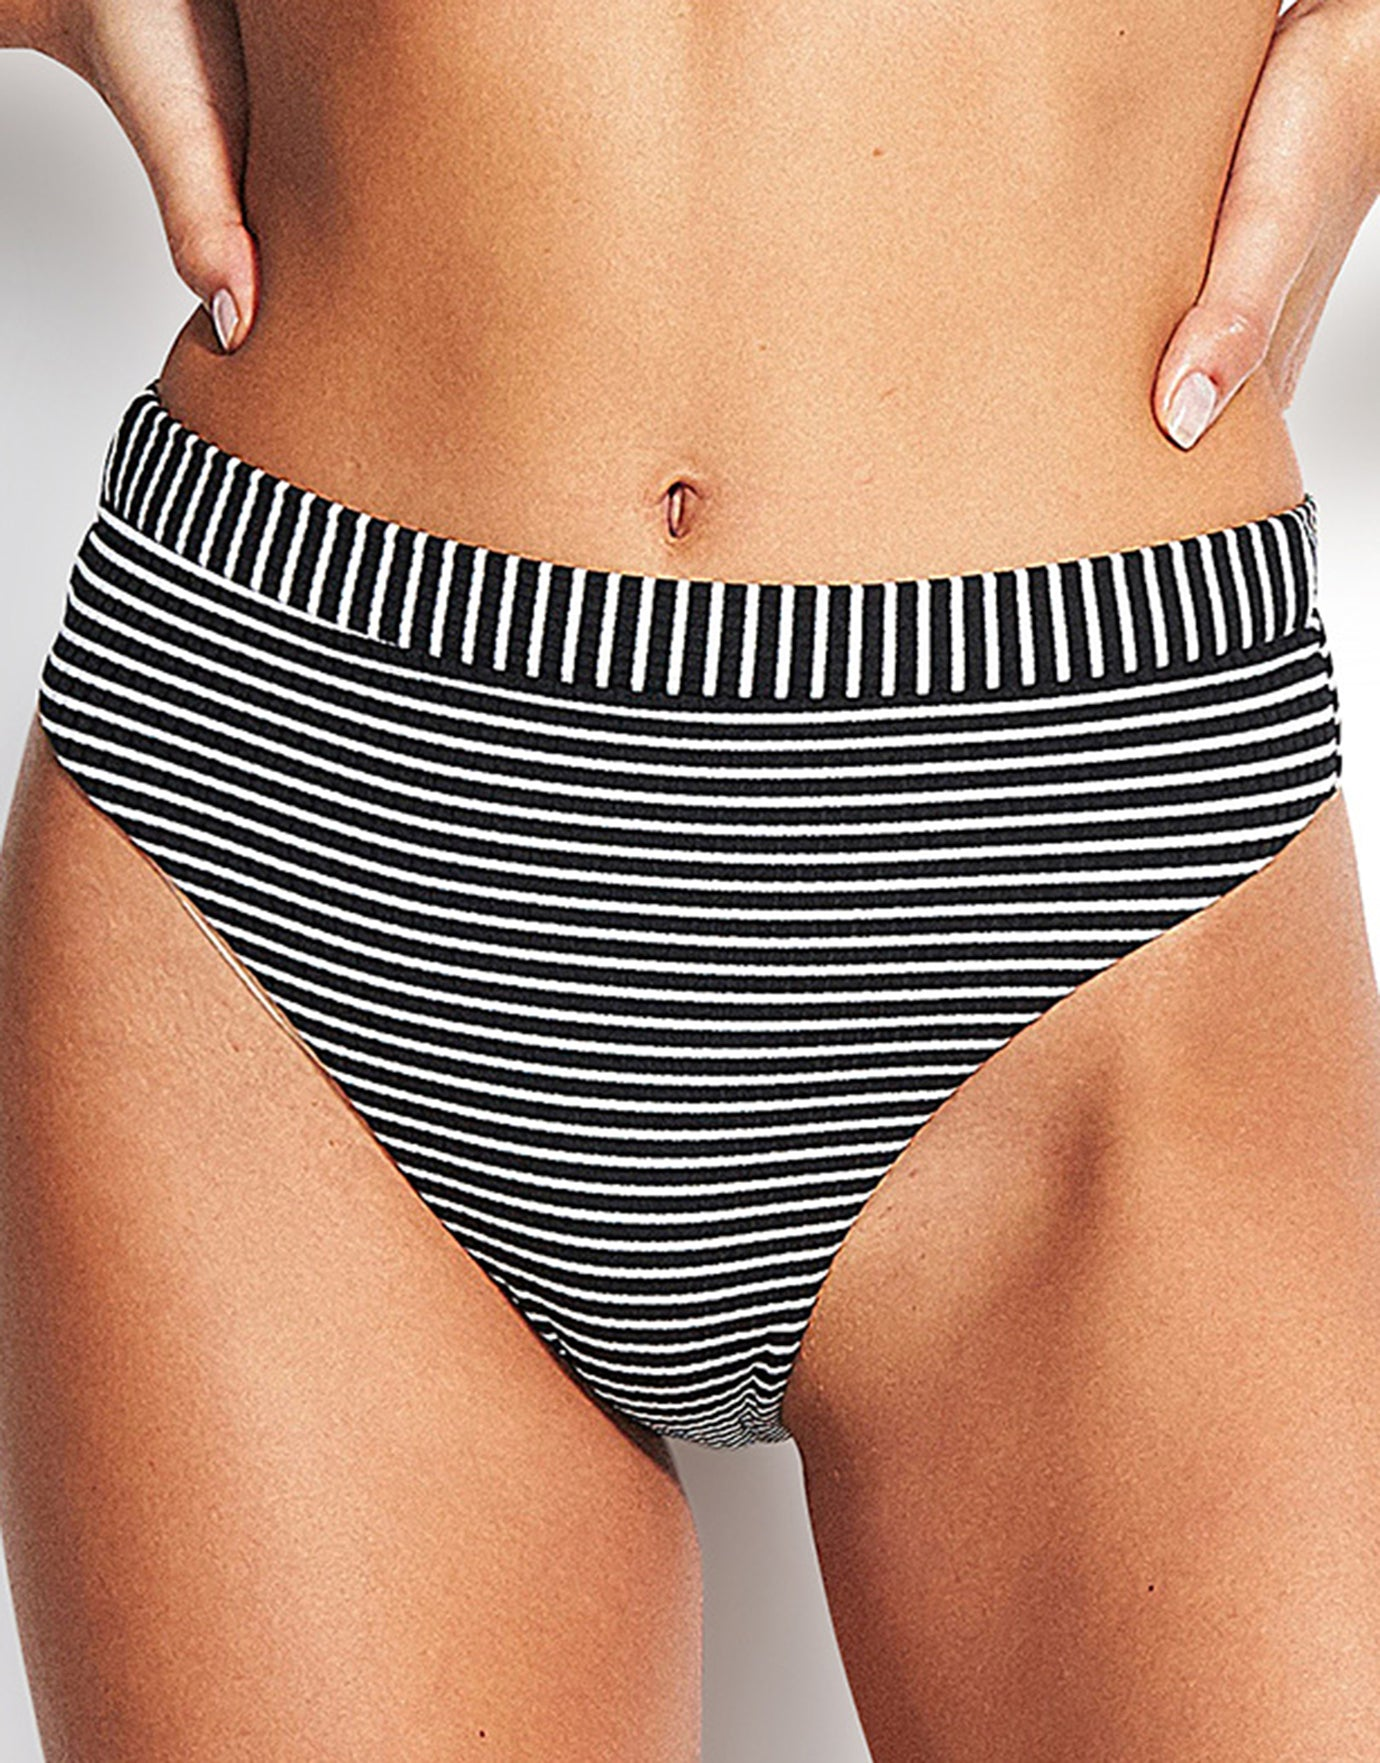 Seafolly Go Overboard High Rise Rio Bikini Bottom - Black